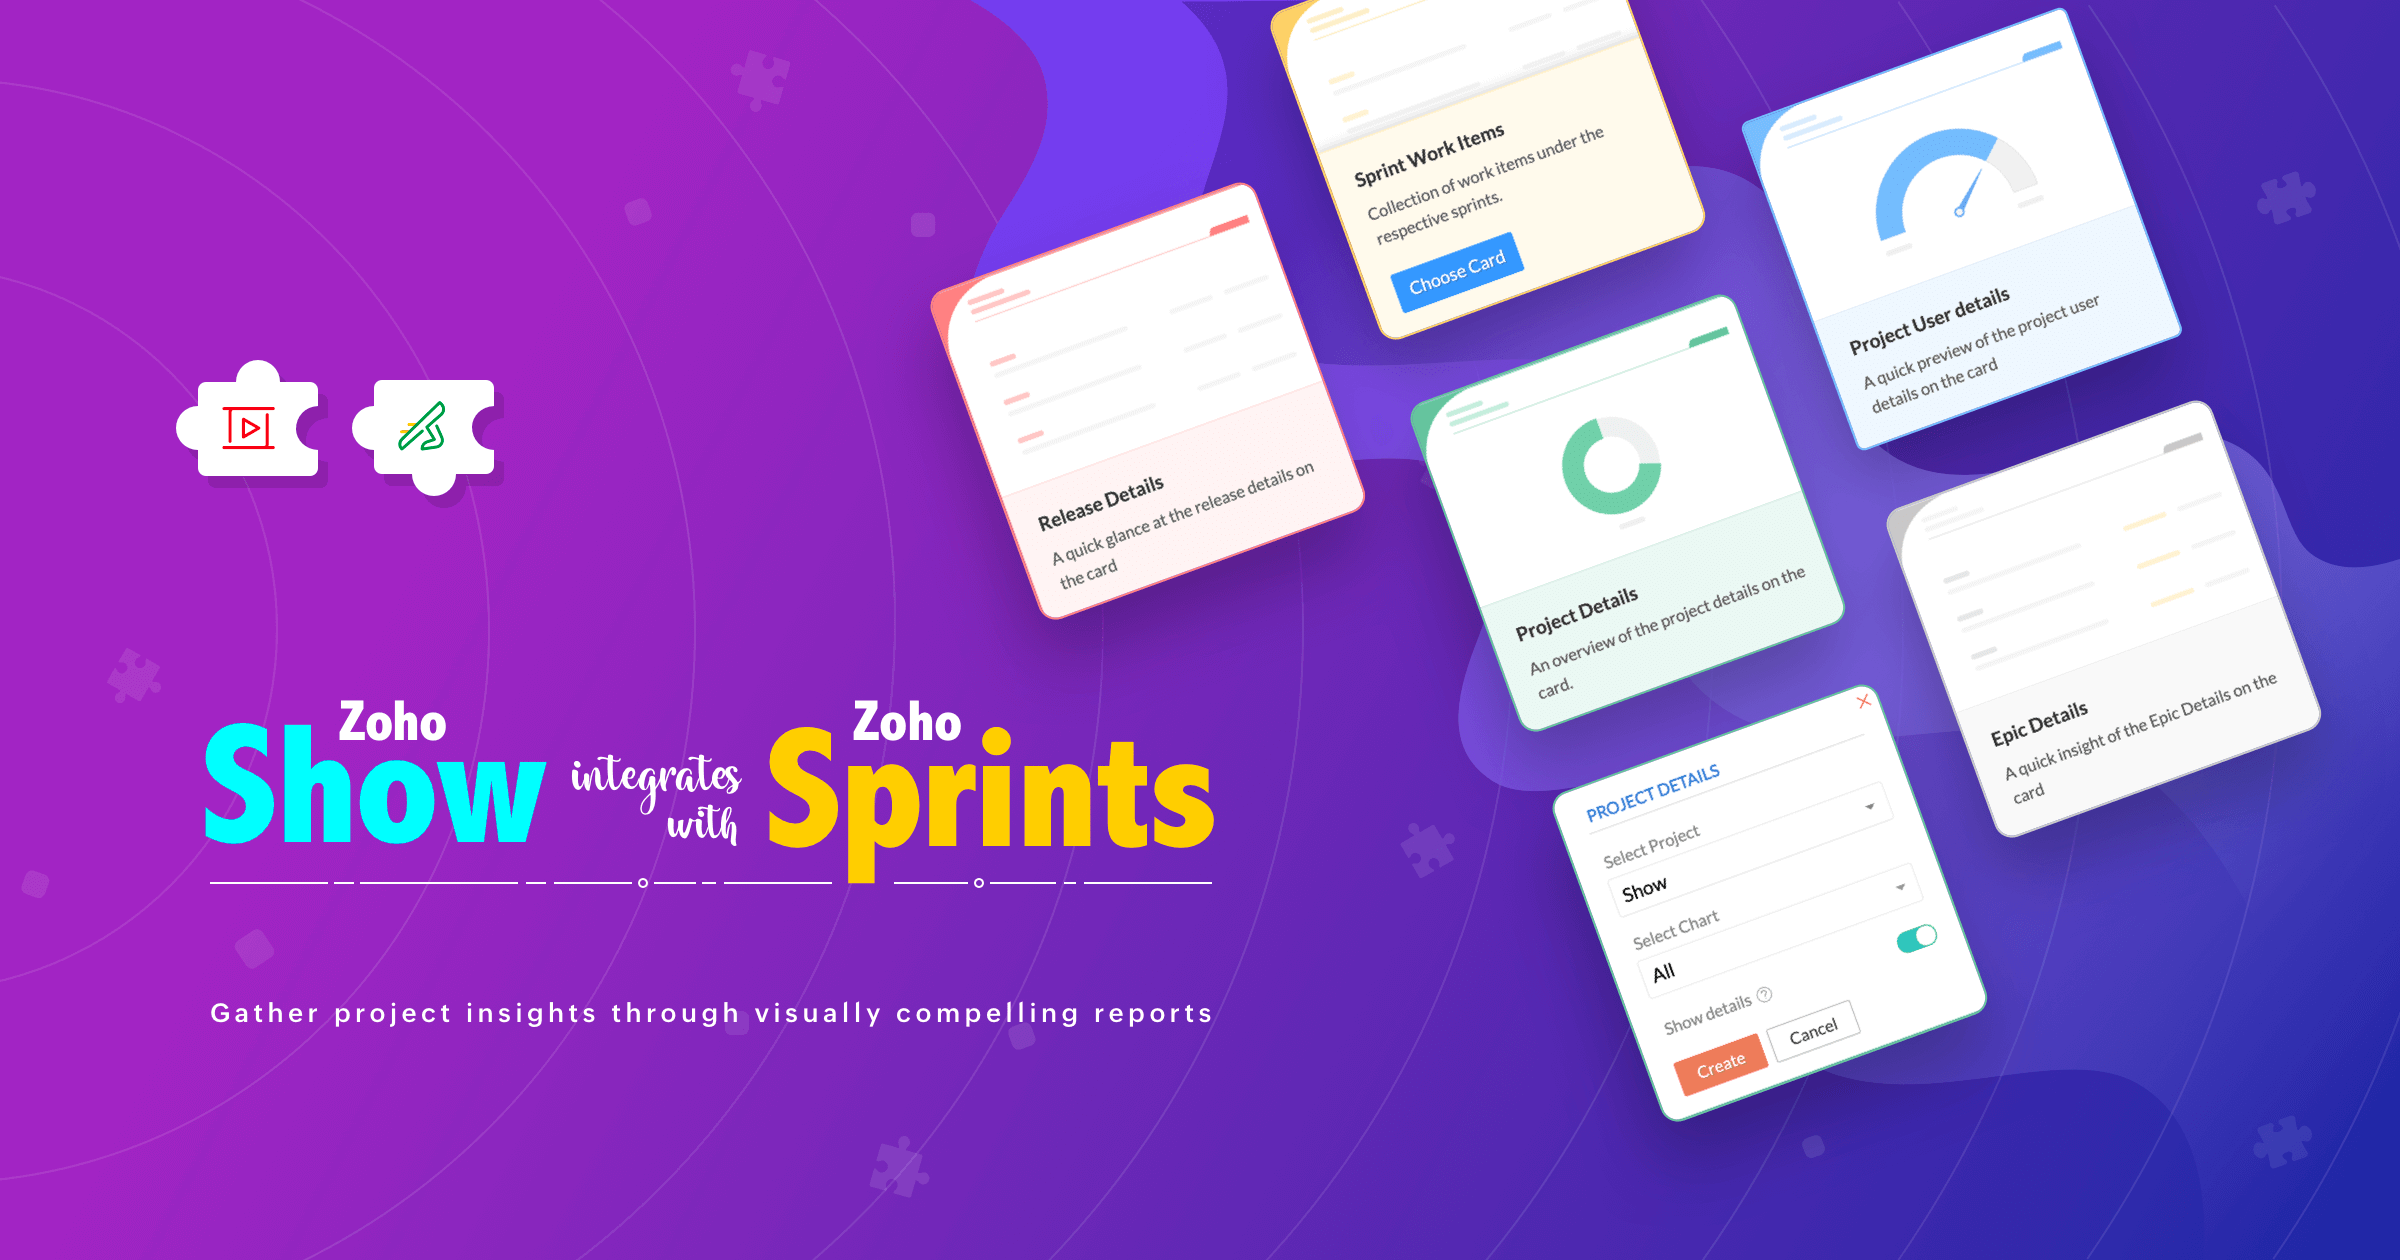 Zoho Show integrates with Zoho Sprints: Gather project insights through visually compelling reports